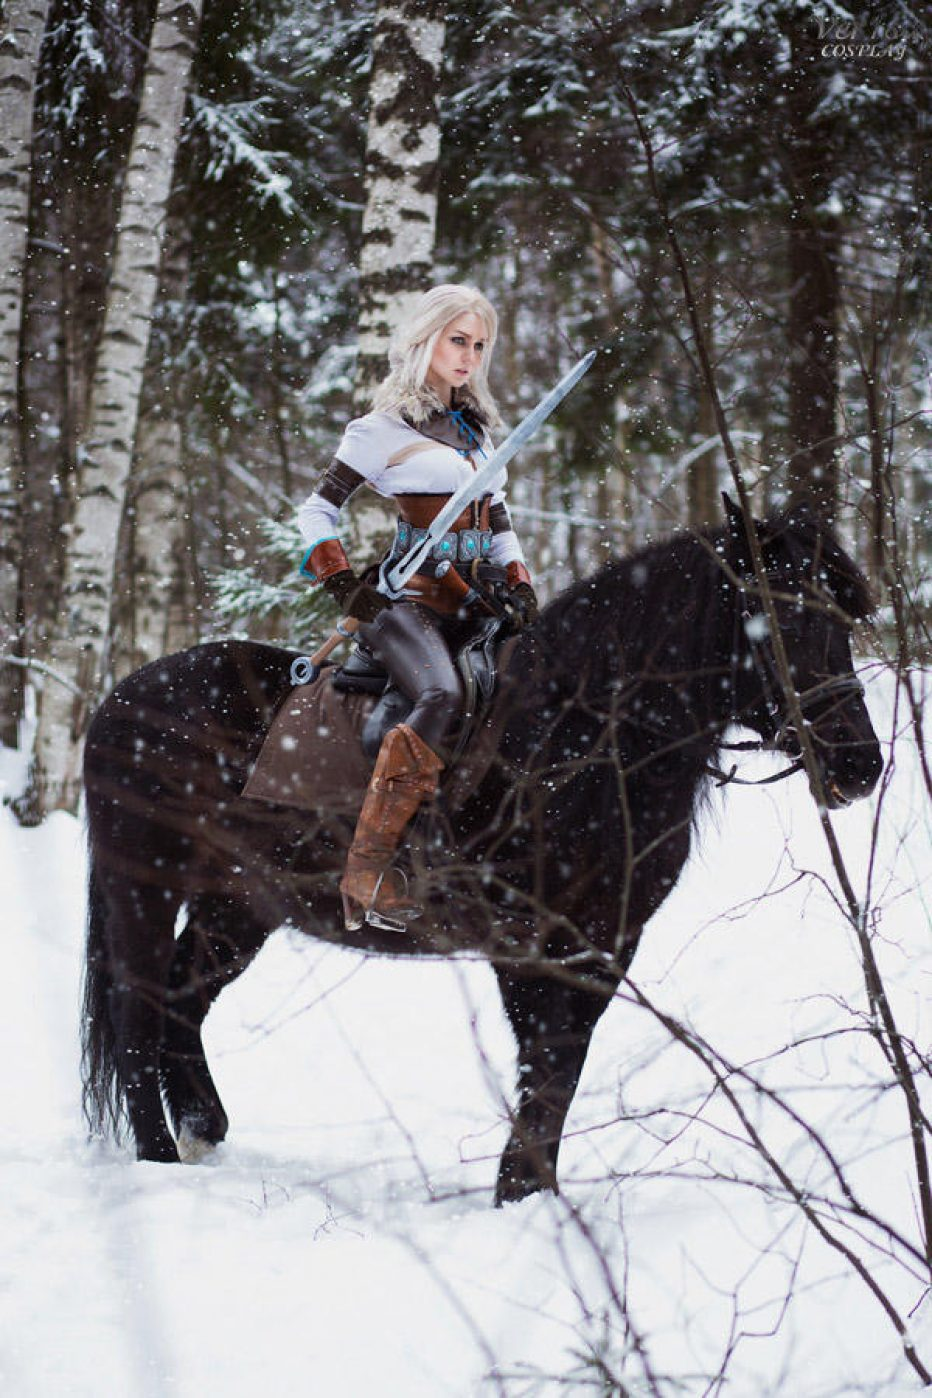 The-Witcher-3-Ciri-Cosplay-Gamers-Heroes-4.jpg